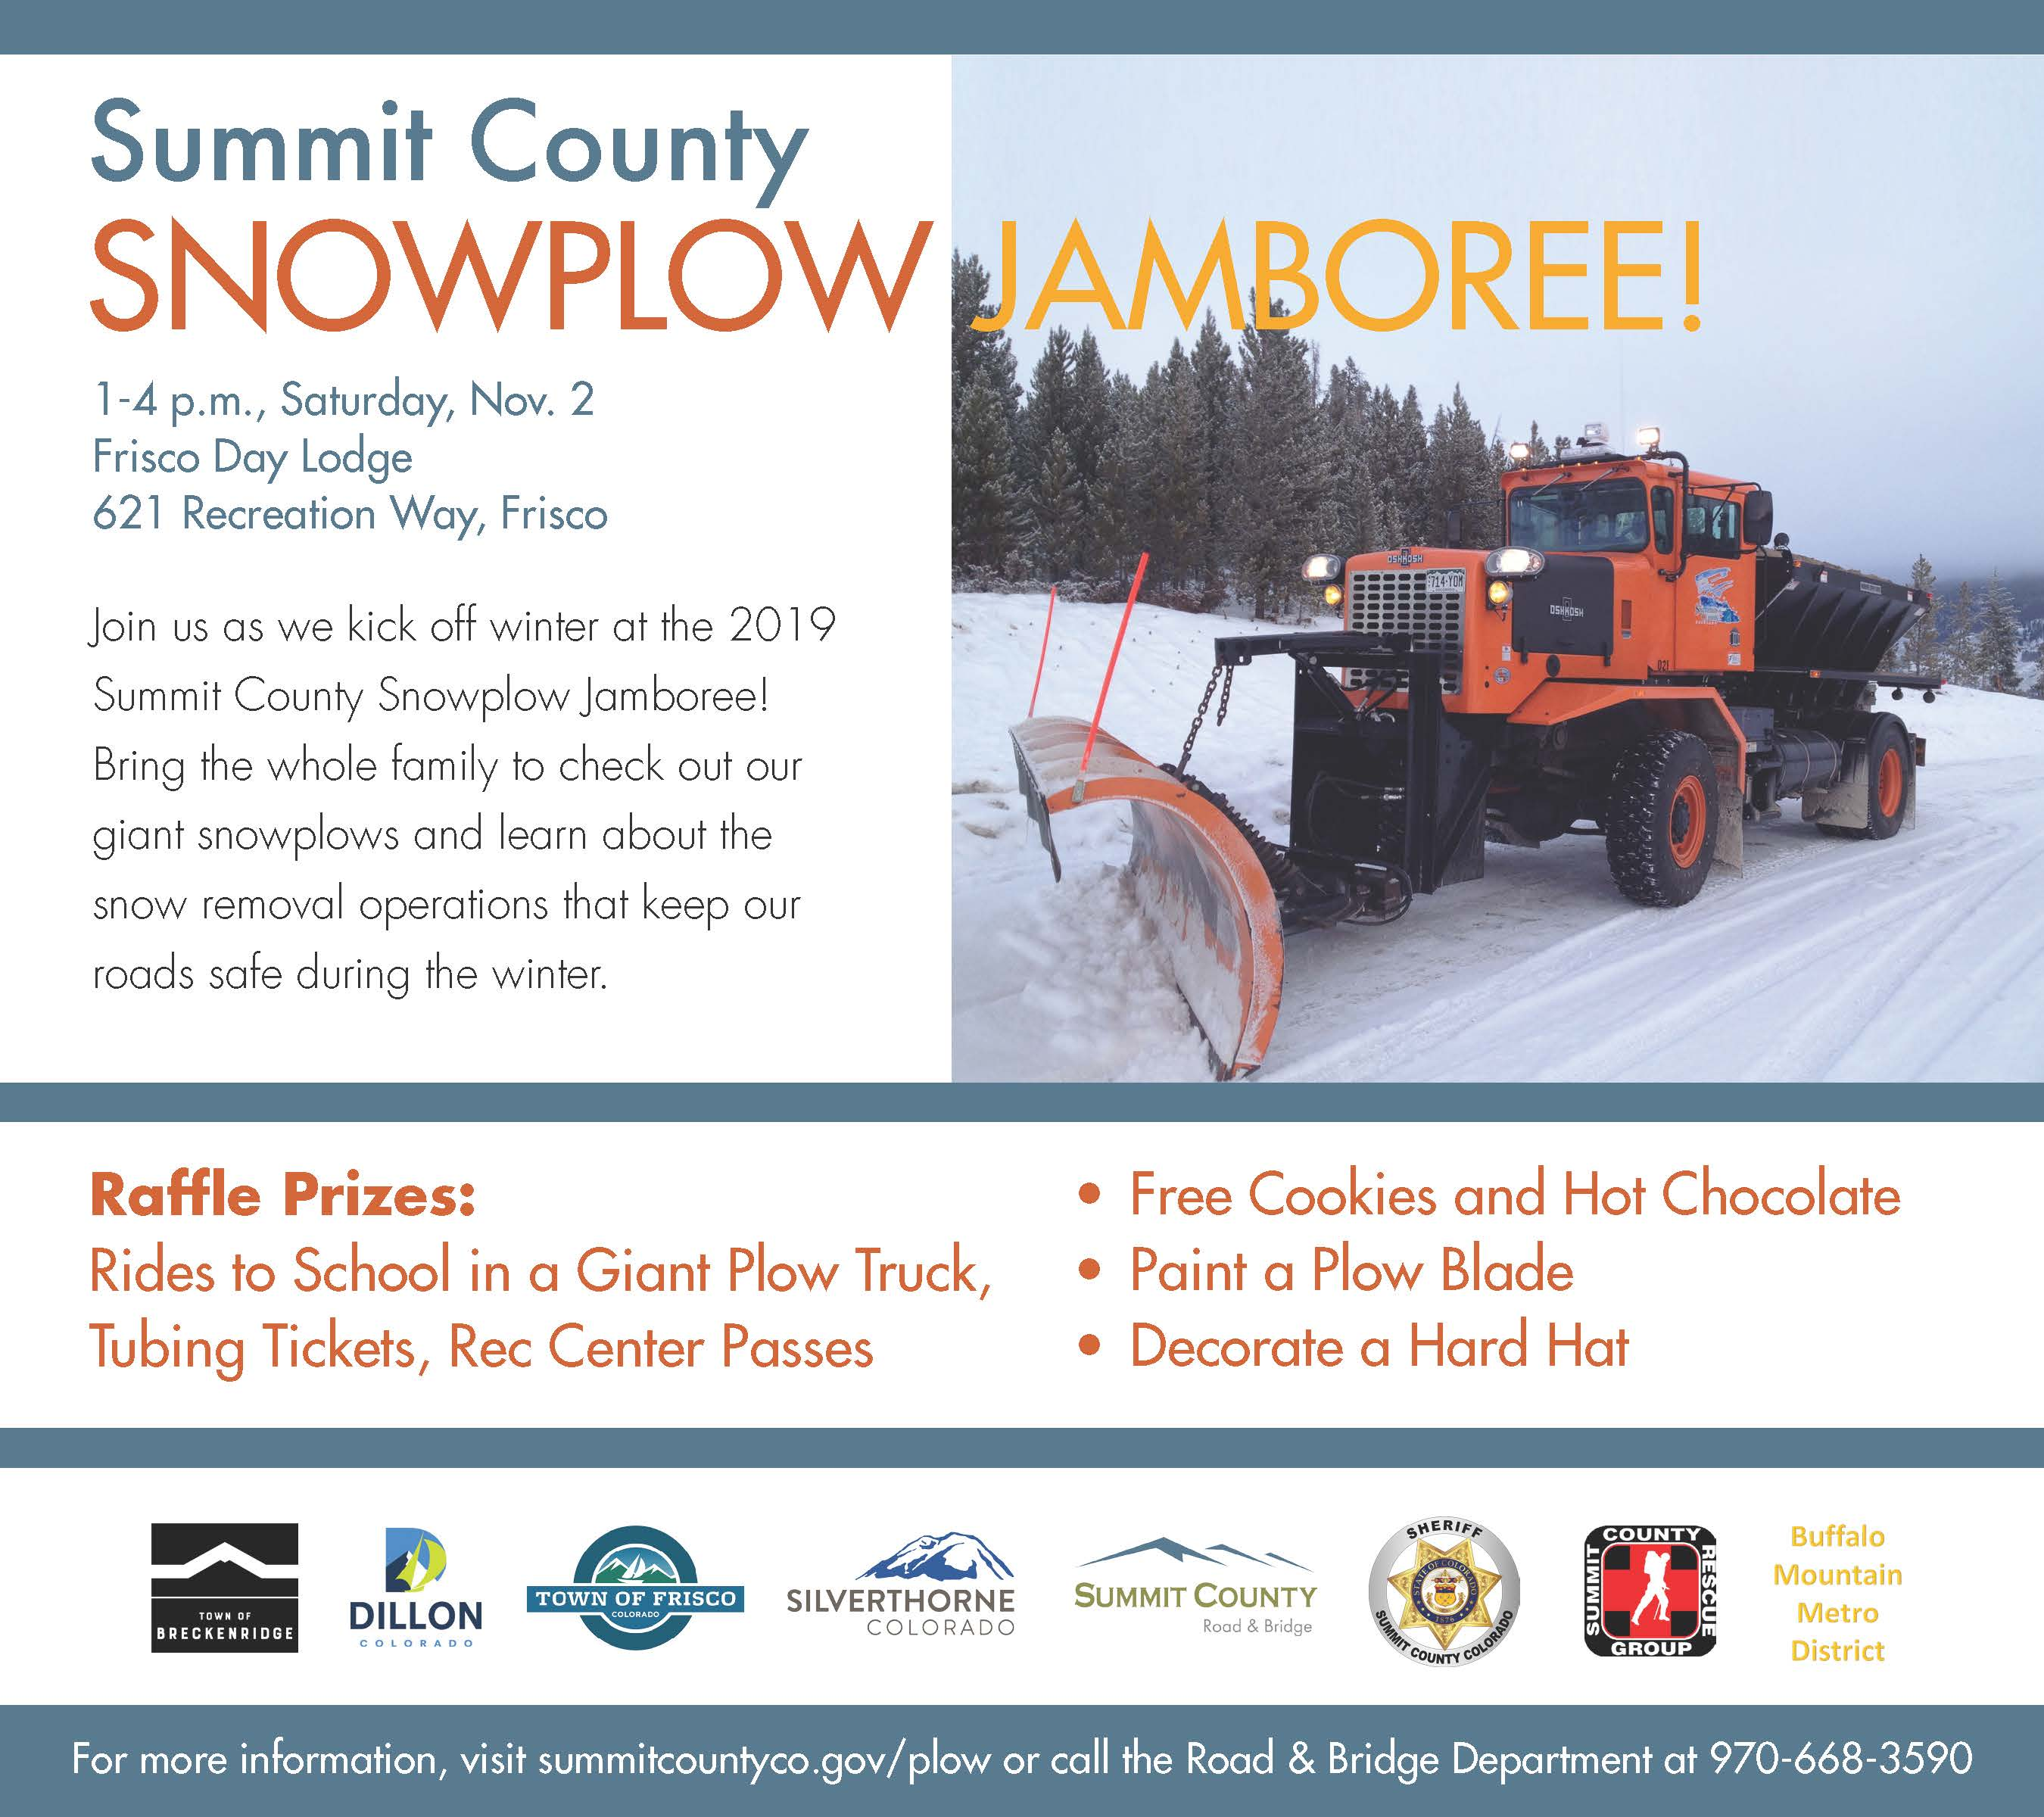 Come to the Snowplow Jamboree November 2.